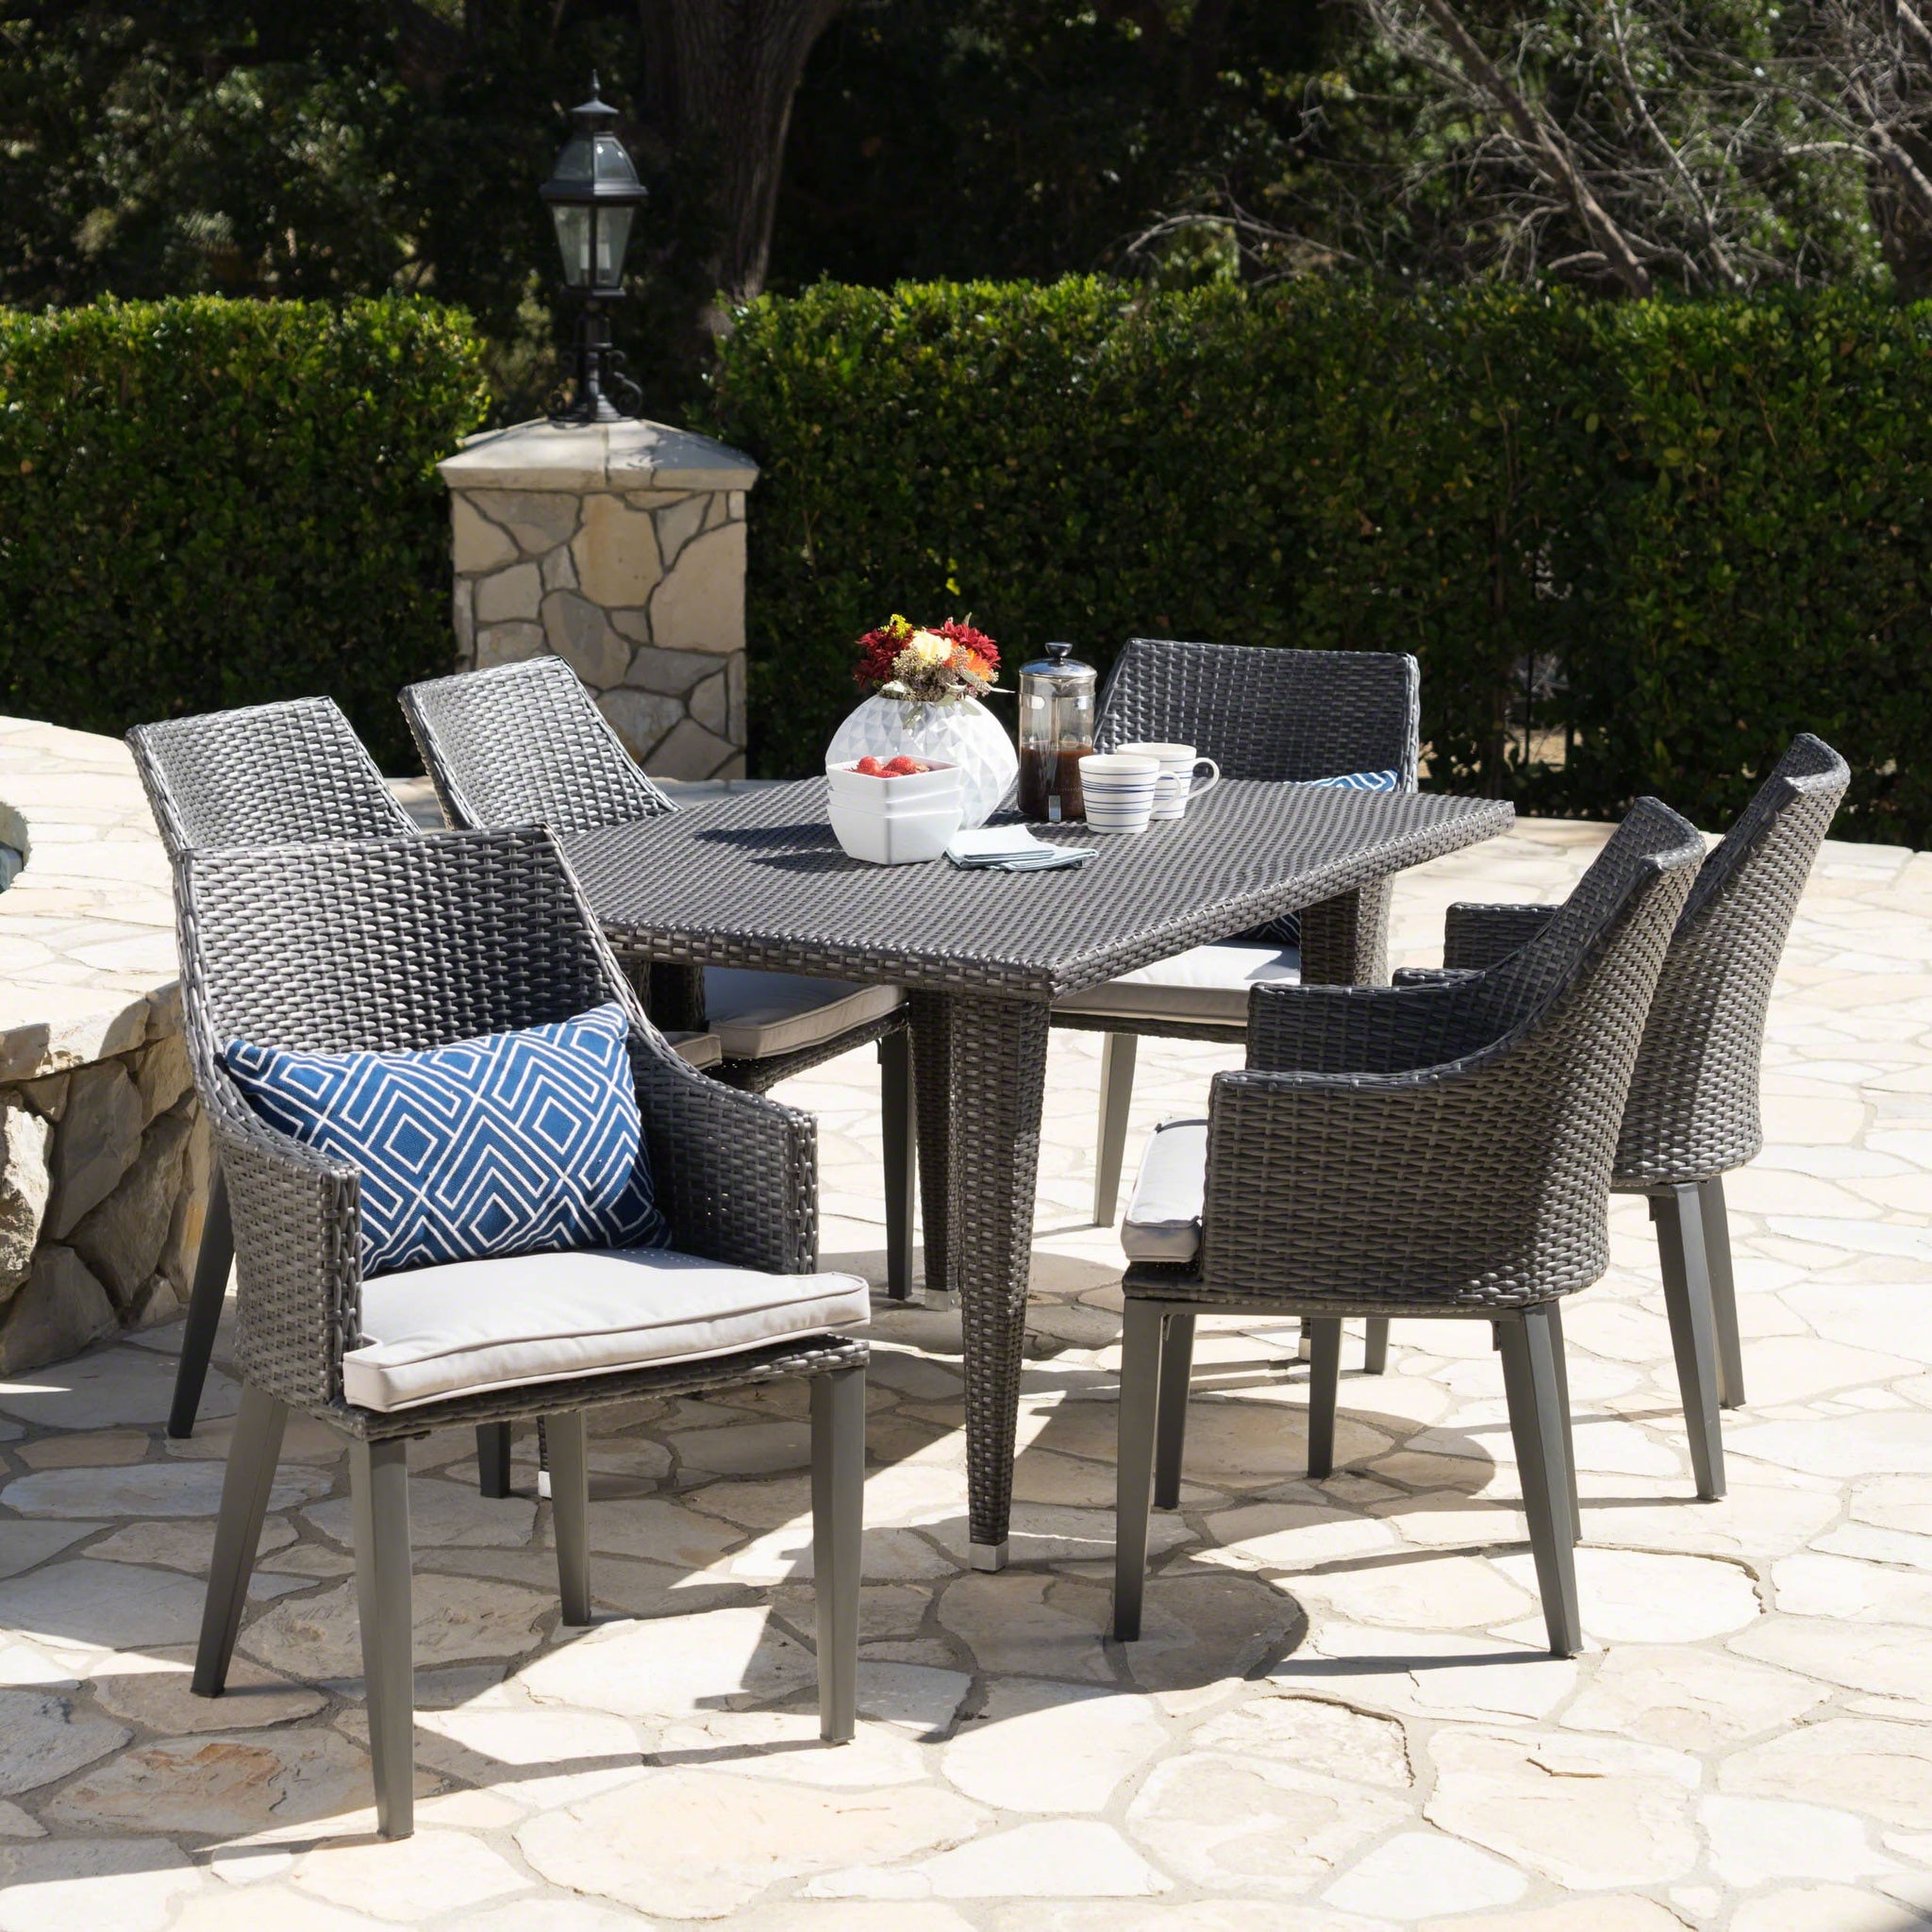 Leni Outdoor 7 Piece Wicker Rectangular Dining Set With Water Resistant Cushions